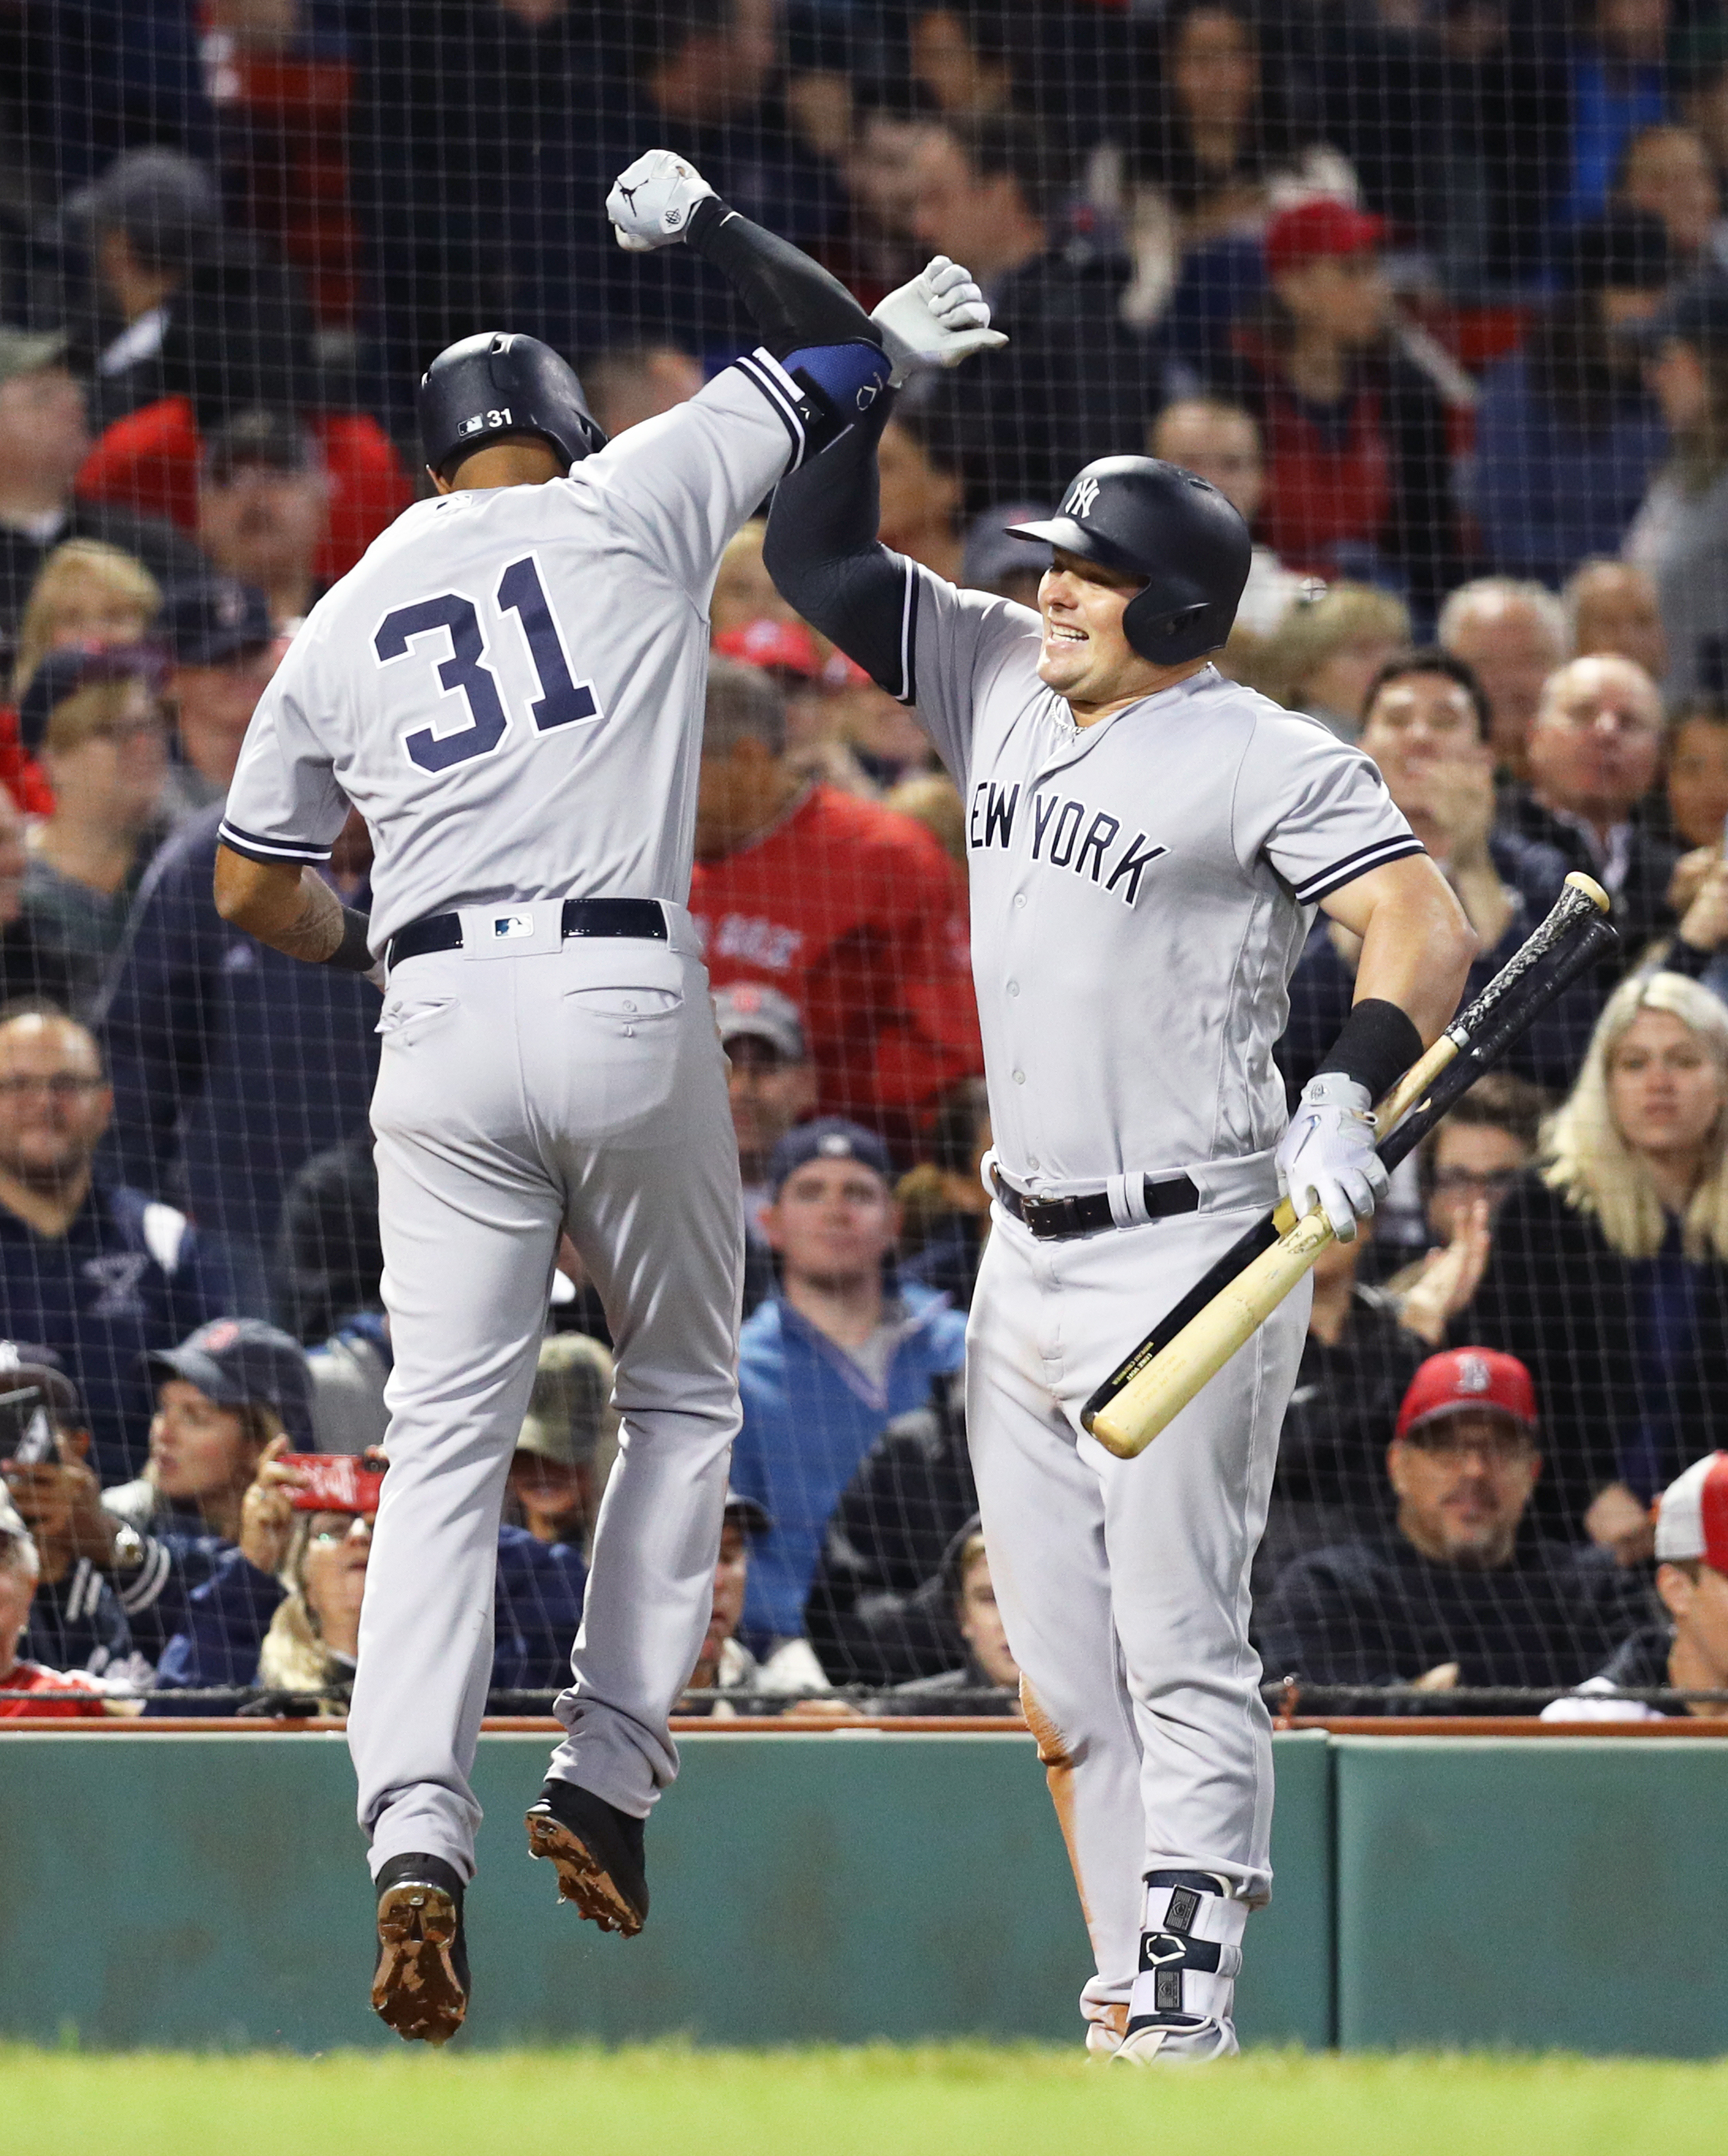 Yankees Set Major League Baseball Record For Most Home Runs In A